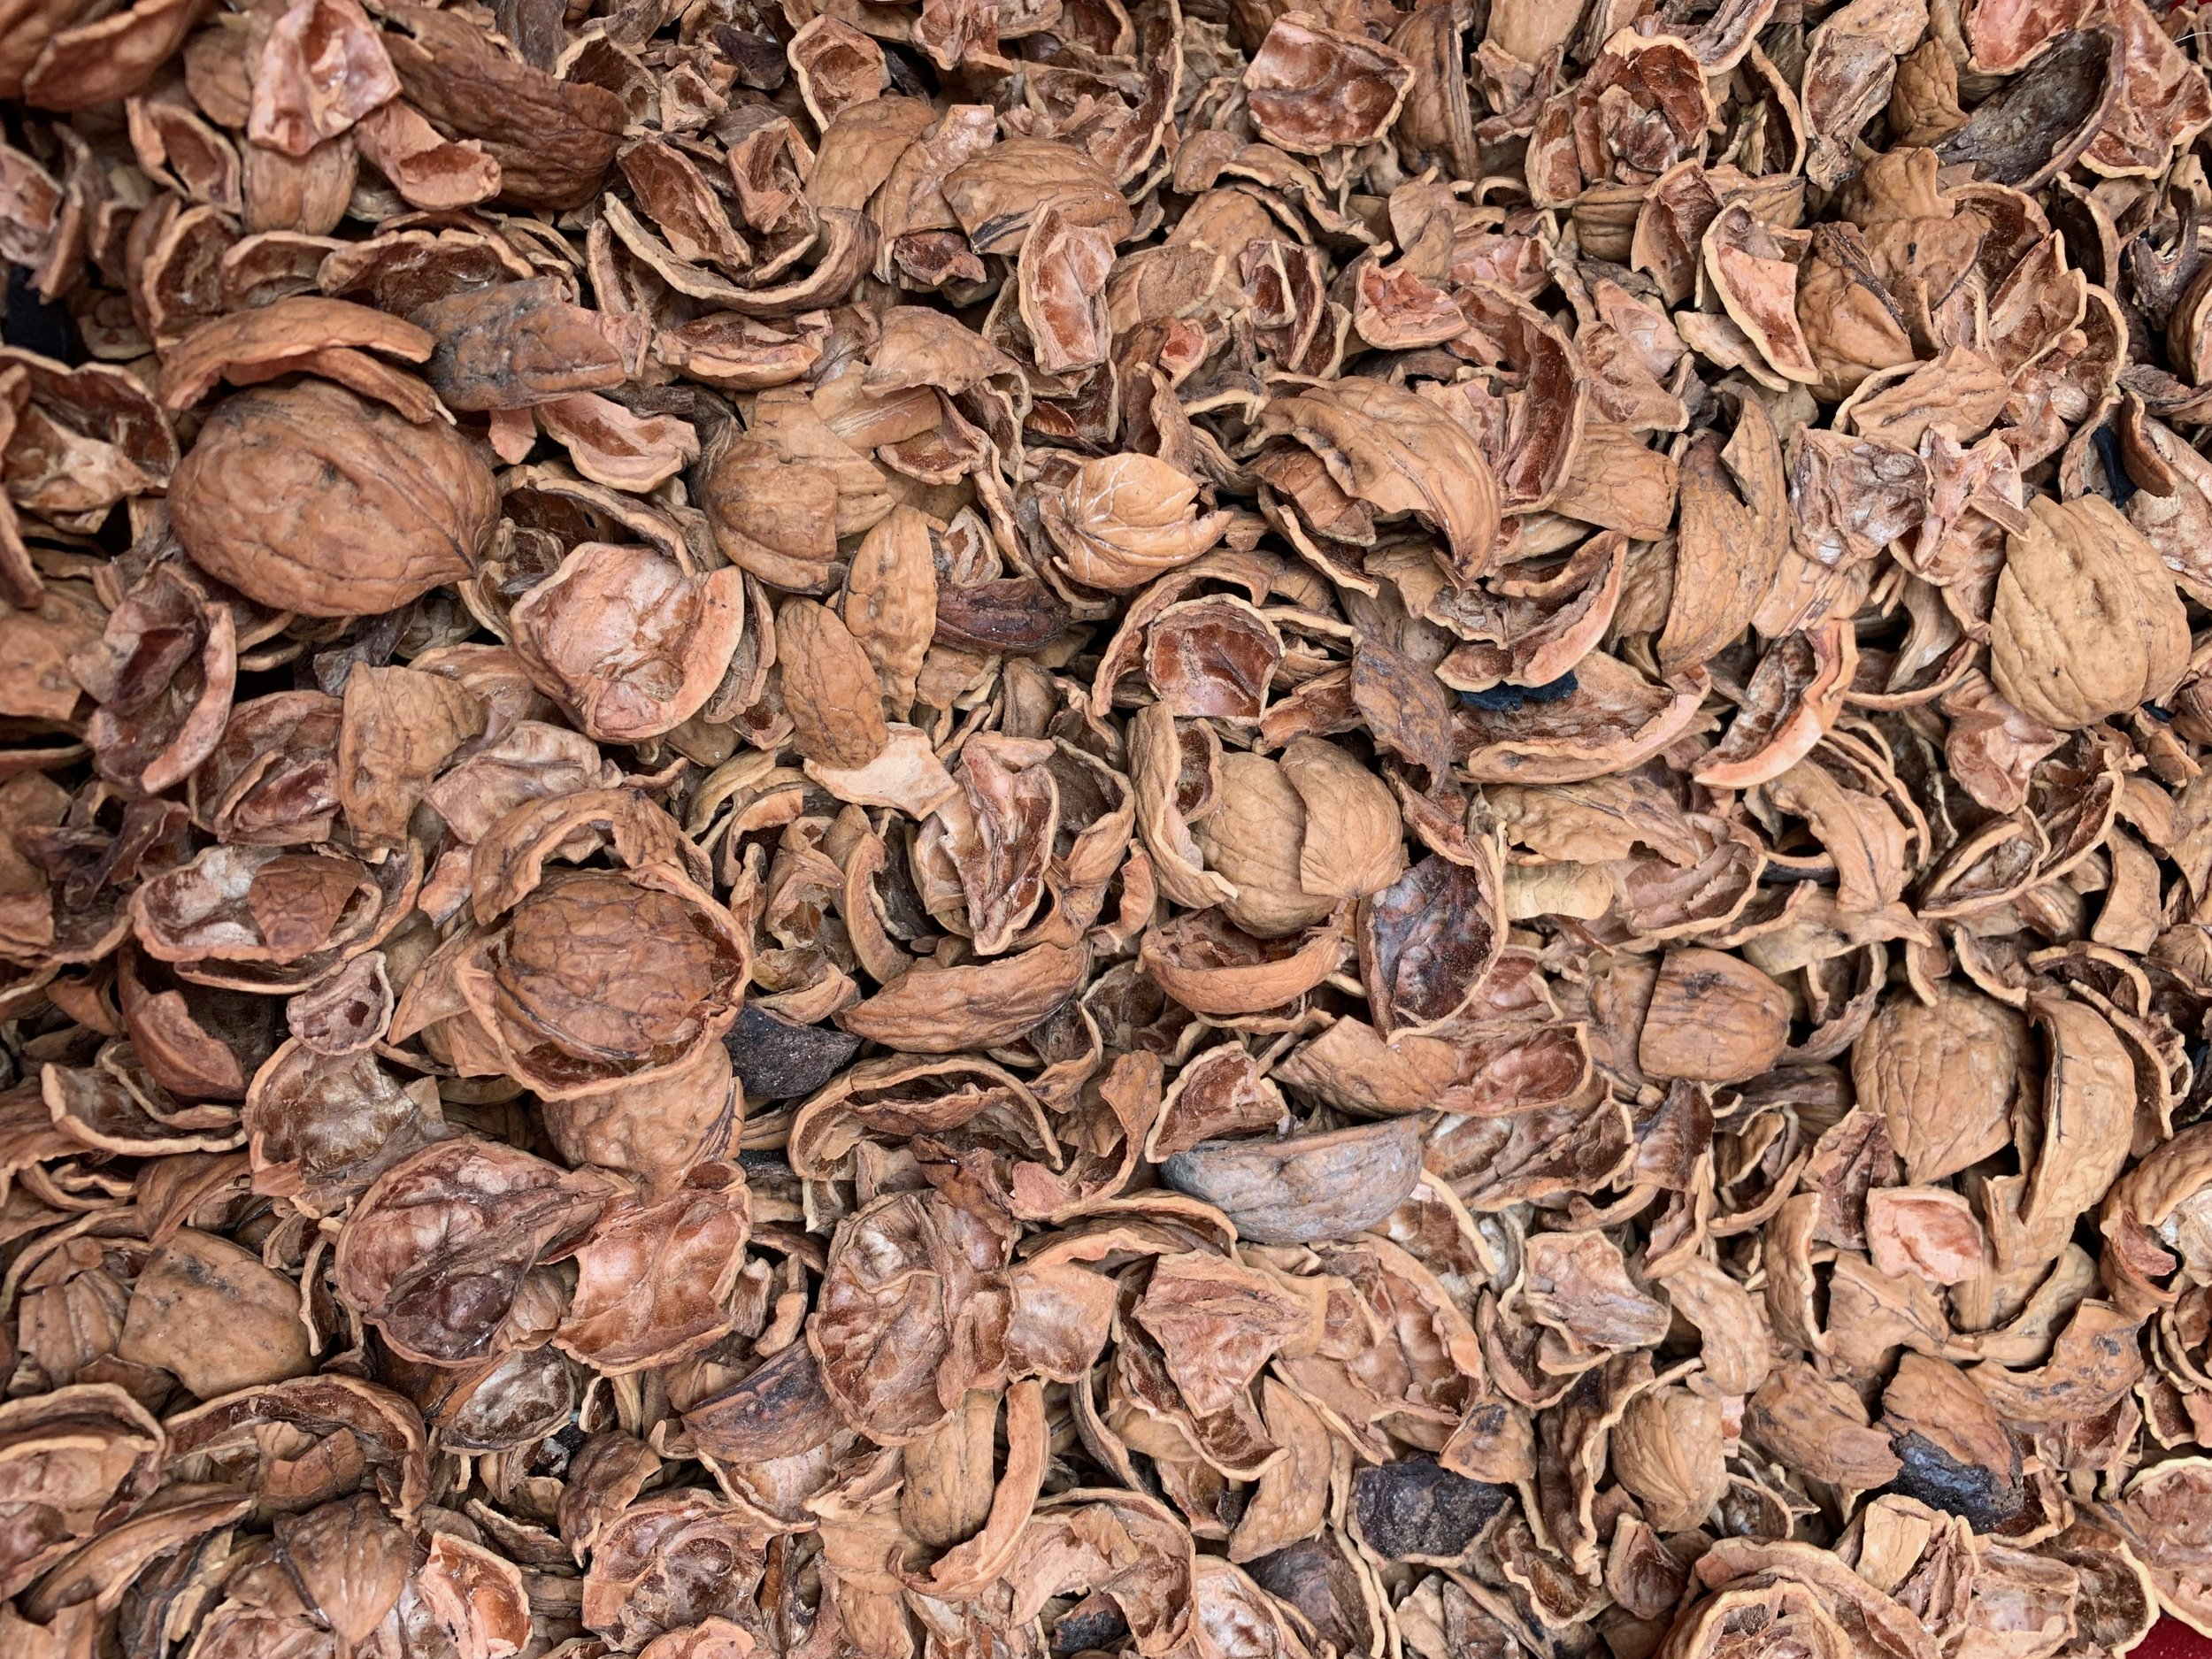 walnut hulls, an abundant waste product from California orchards, which will be turned into biochar